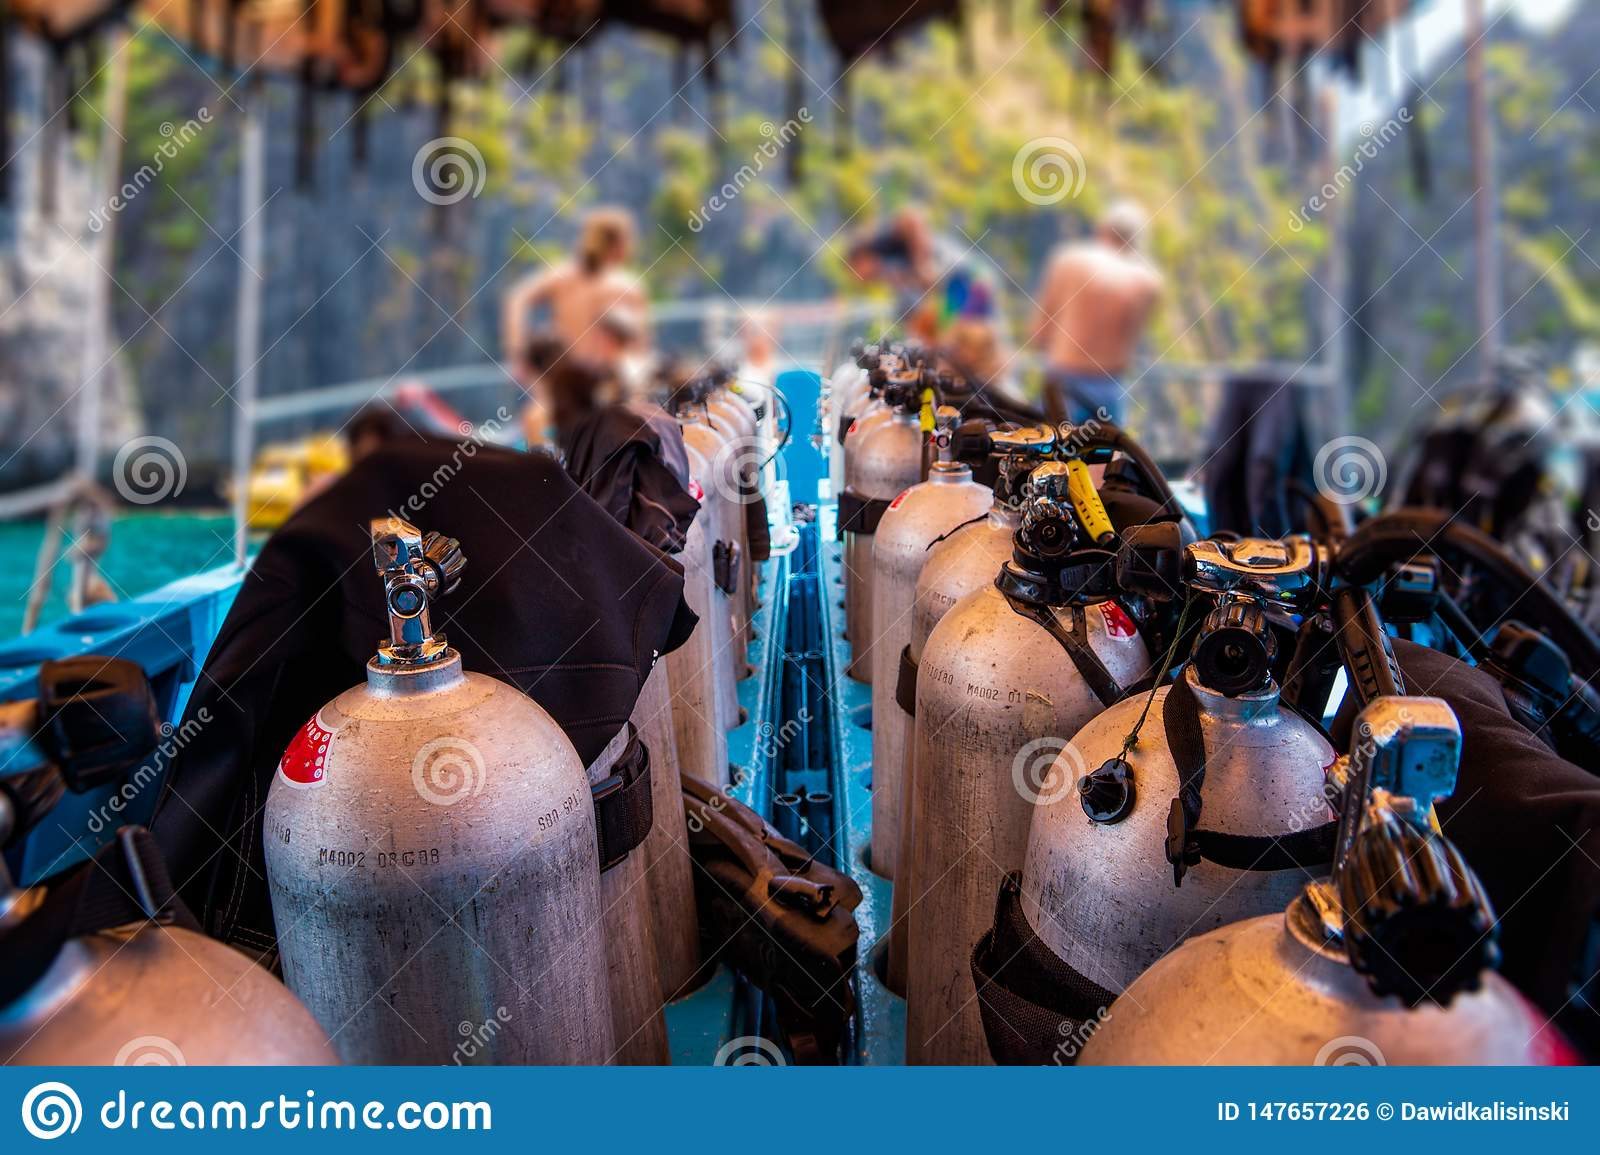 Scuba divers getting ready for diving on a boat full of equipment, Thailand